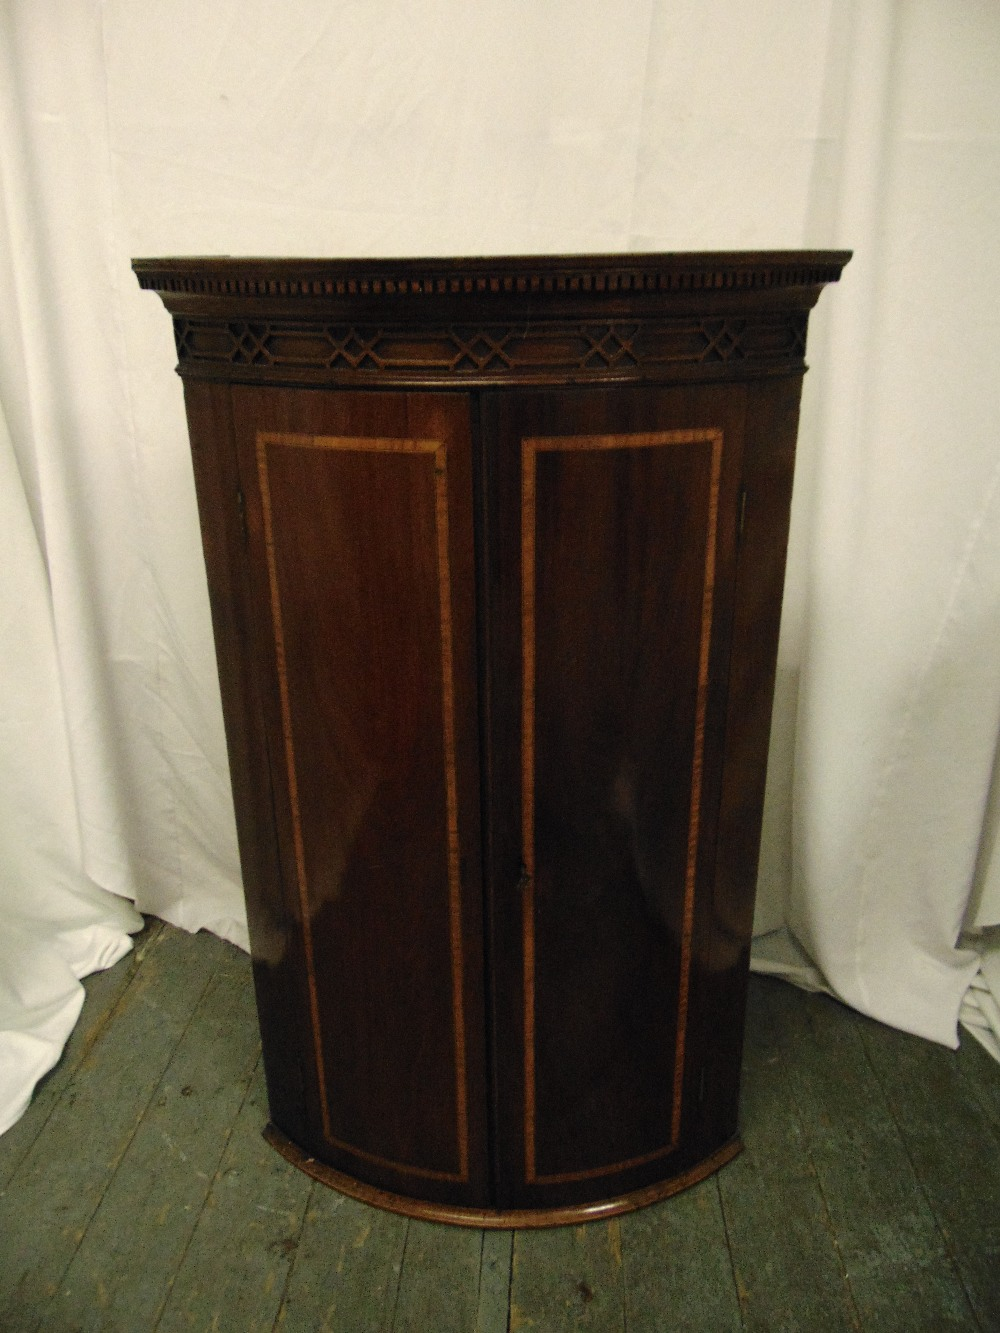 Lot 8 - A 19th century mahogany inlaid wall mounted corner cabinet with hinged doors